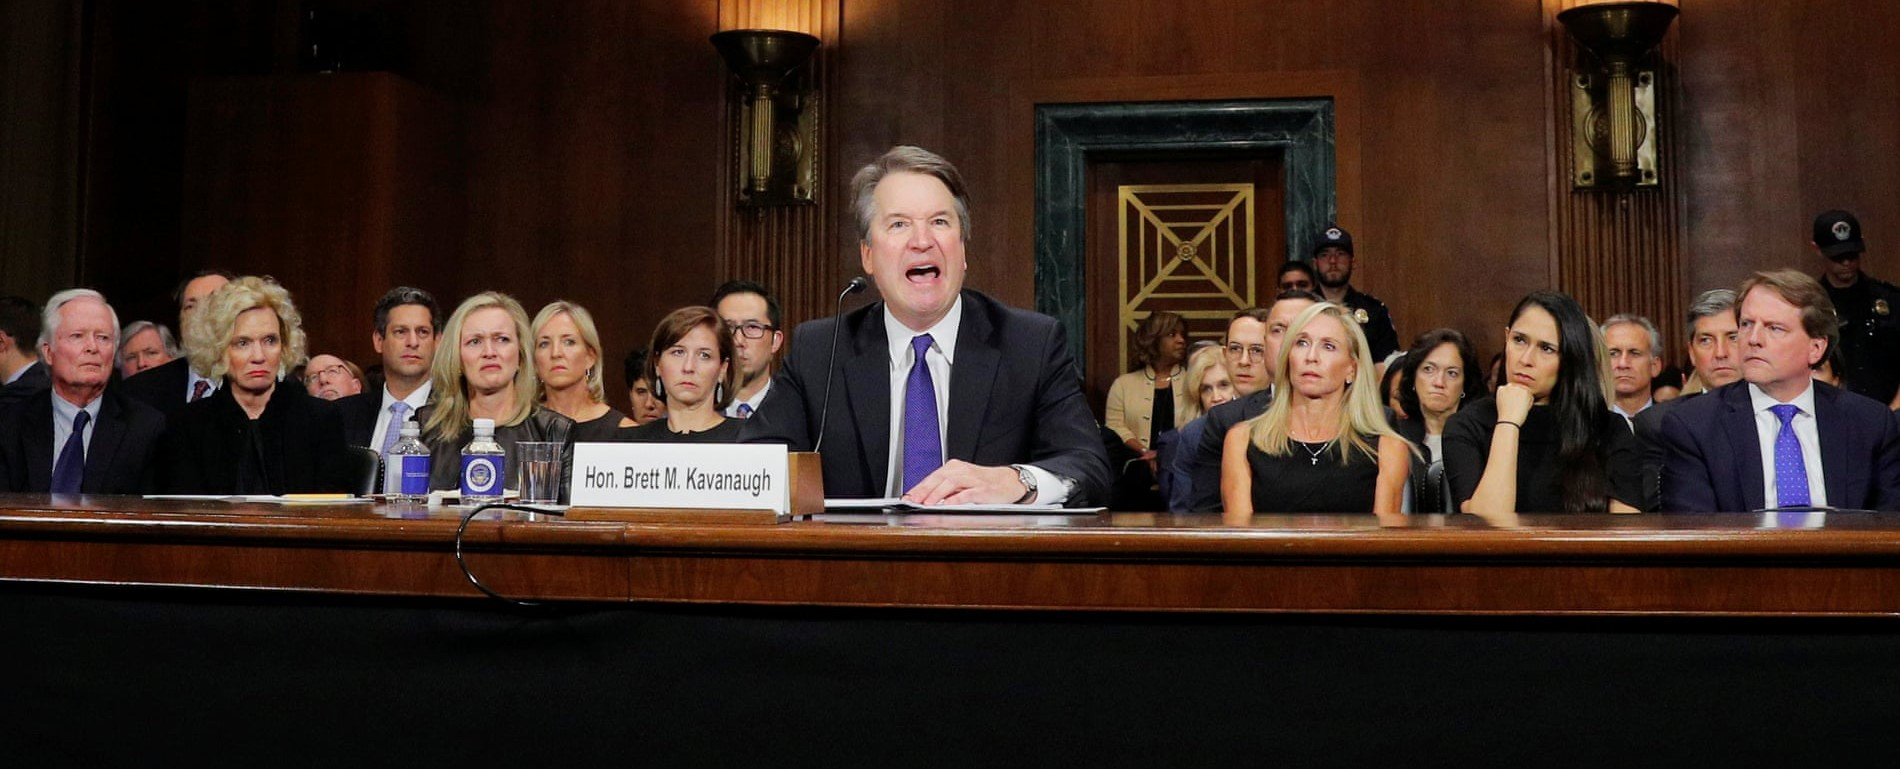 Kavanaugh looking angry while scowling women look on